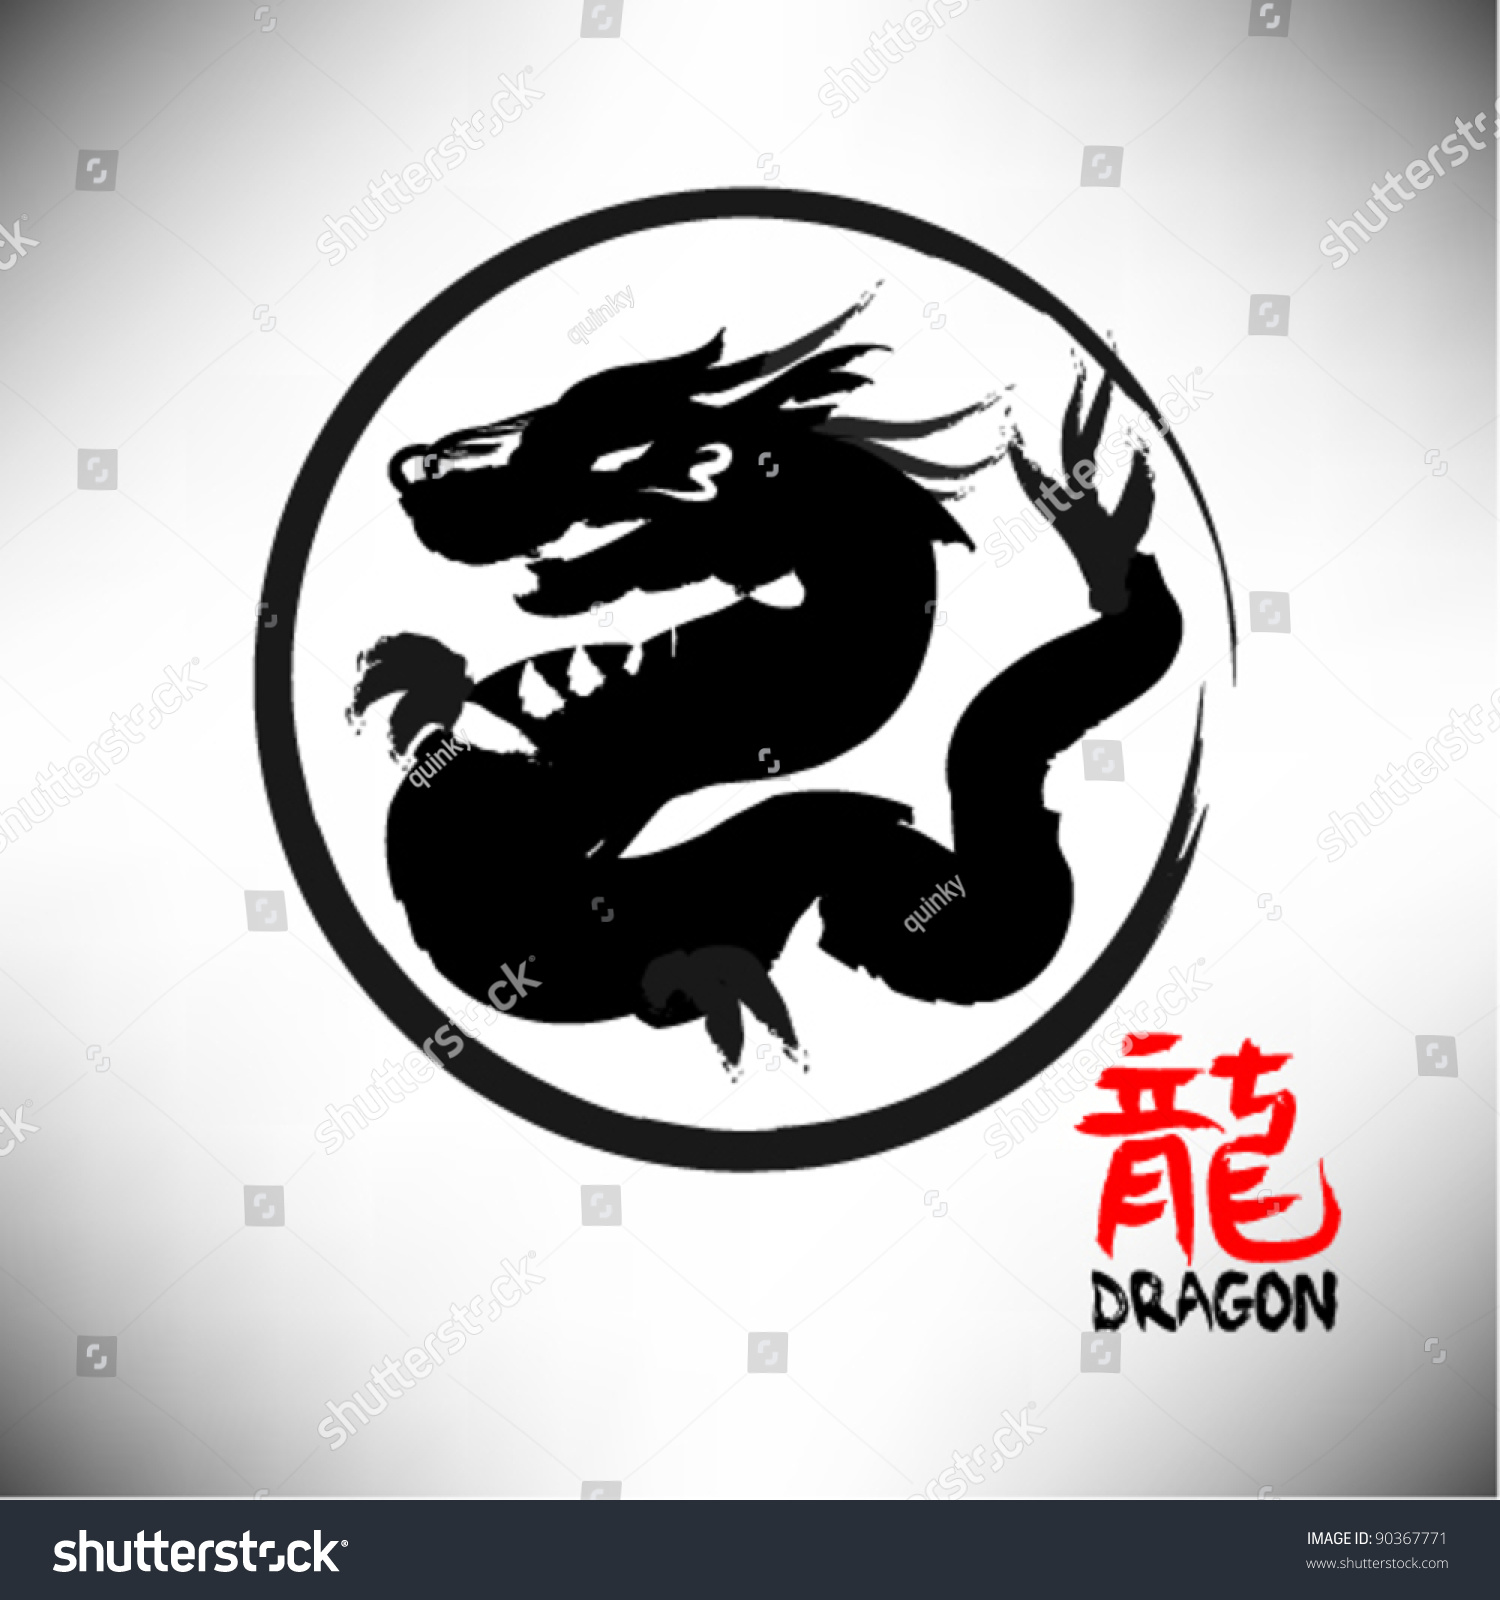 How to breed heraldic dragon - Chinese Calligraphy Dragon Year Vector Design